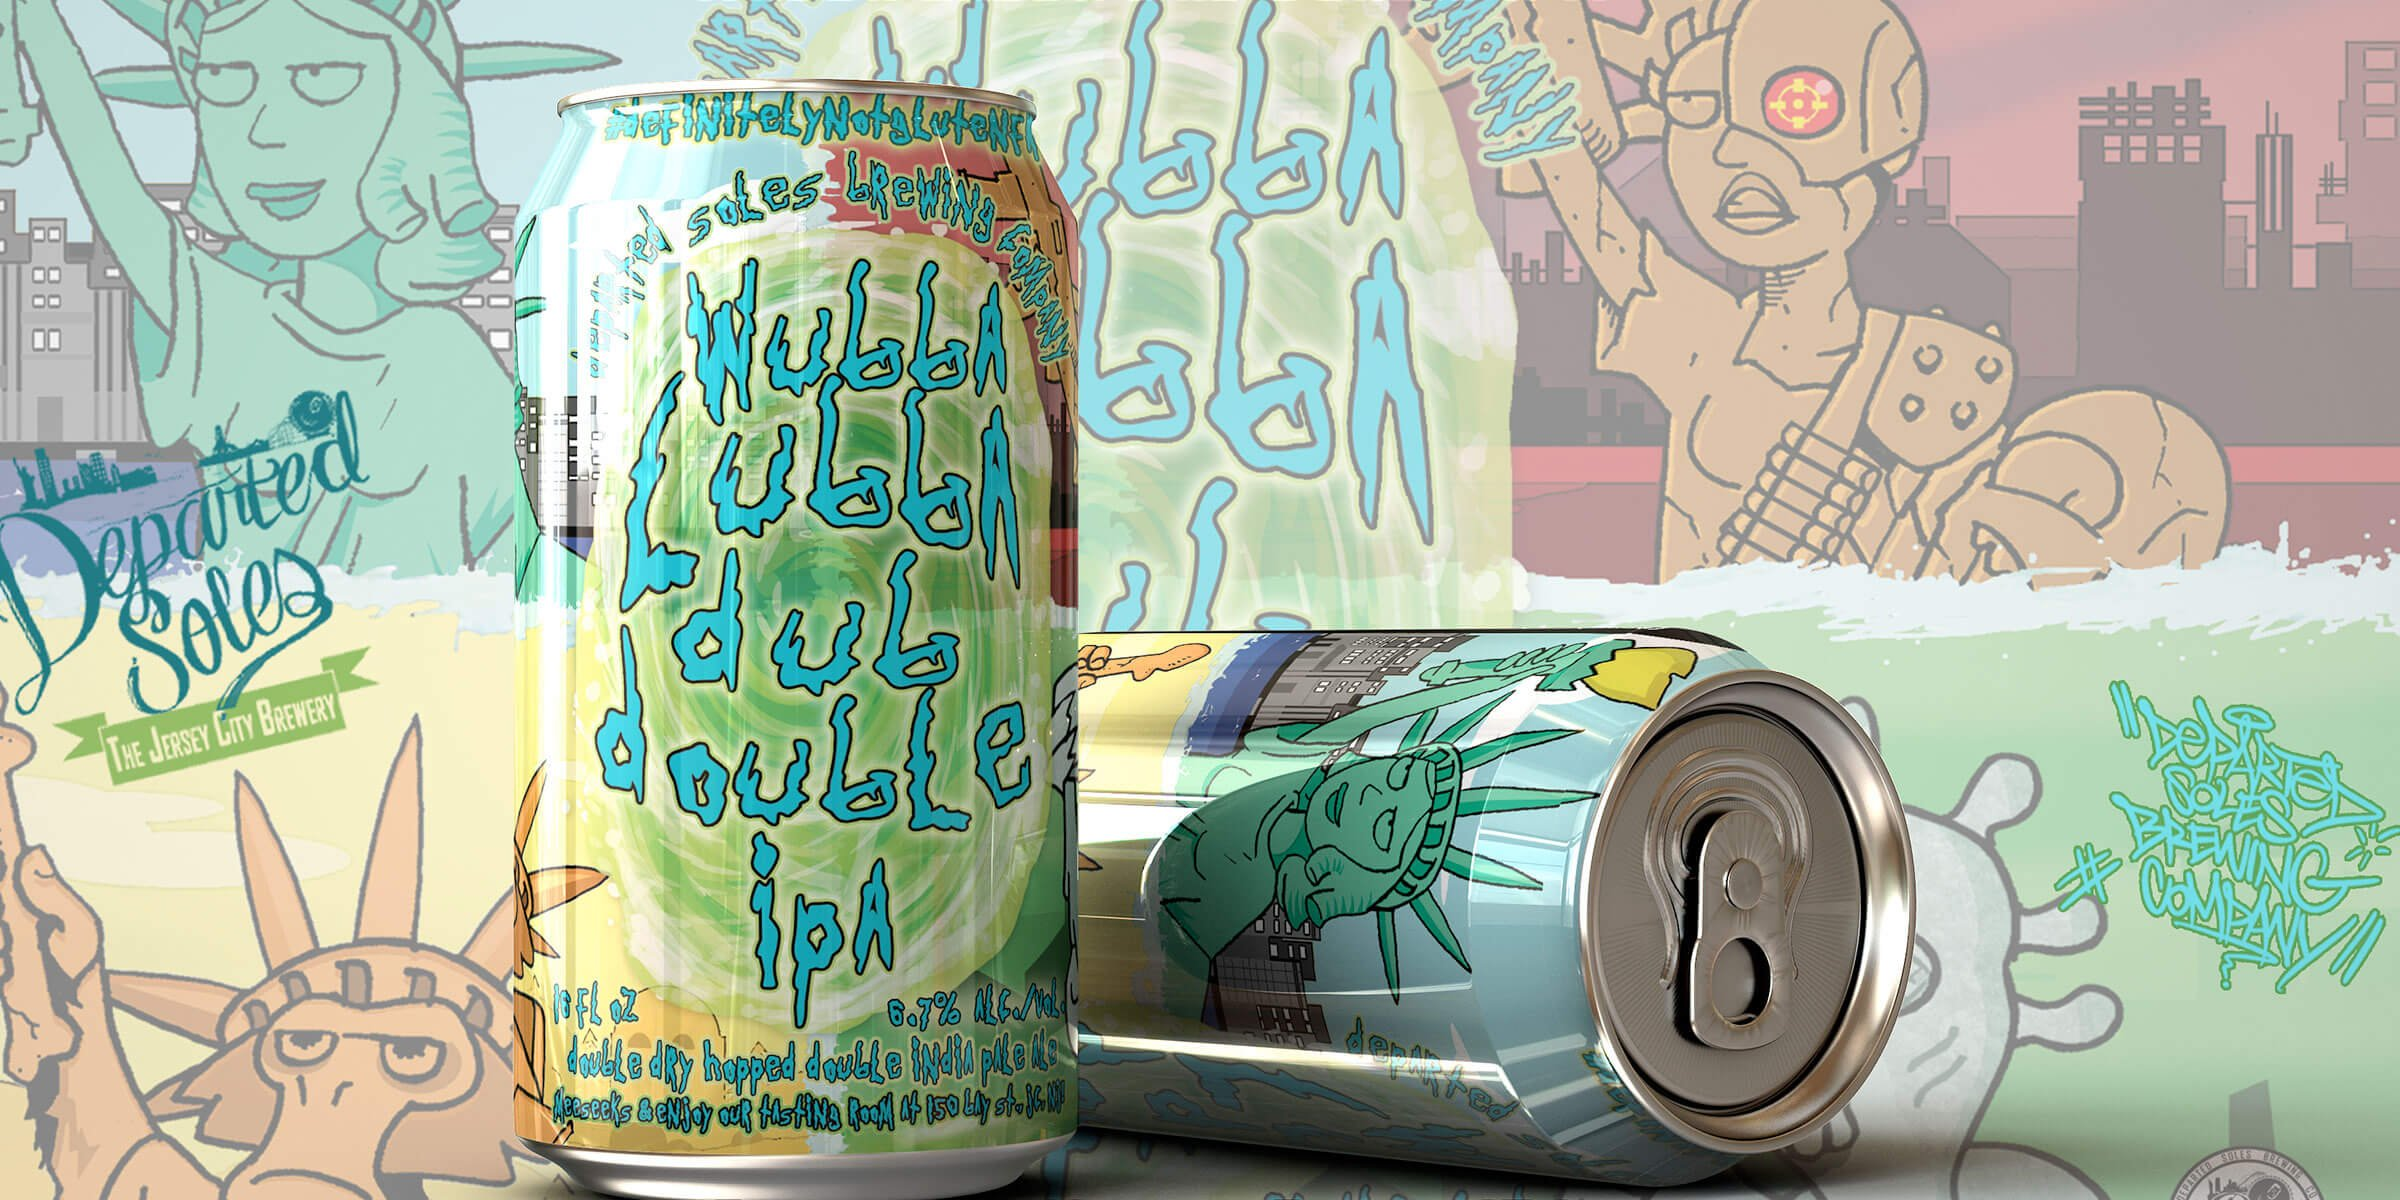 Wubba Lubba Dub Double IPA, a collaboration between Adult Swim and Departed Soles Brewing Company, will be available in 12 oz. cans on Friday, July 17th